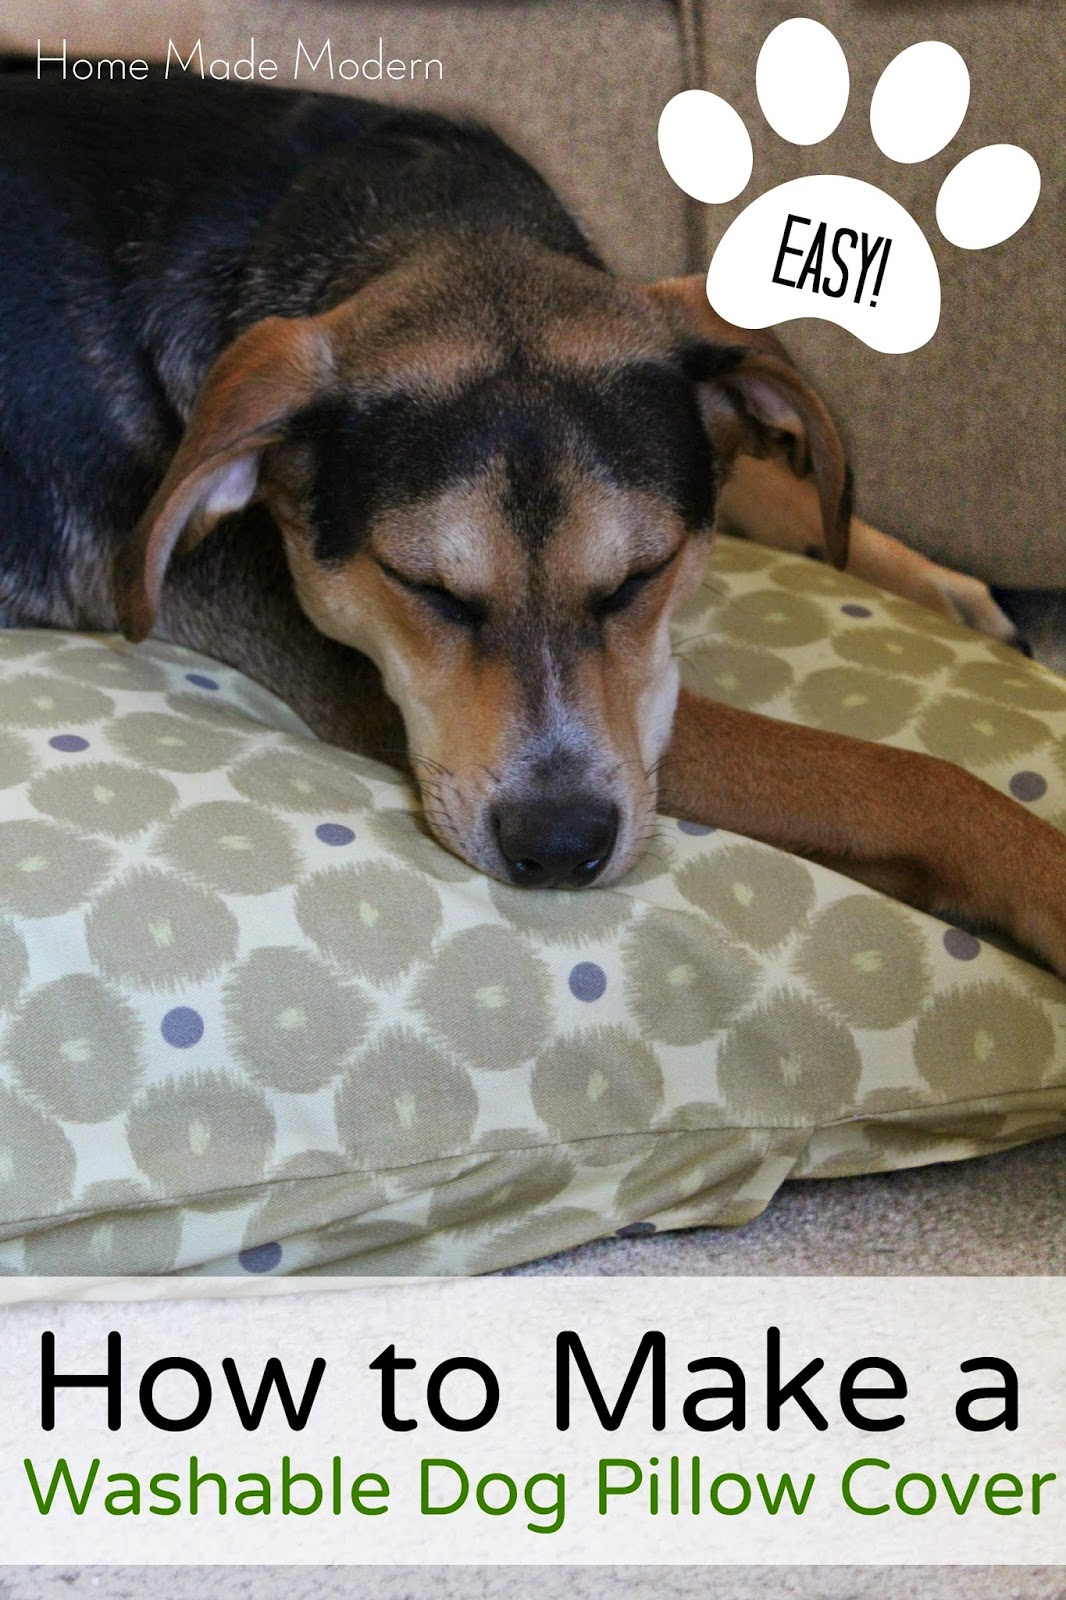 Guest Post: How to Make a Dog Bed with Custom Fabric - Zazzle Blog